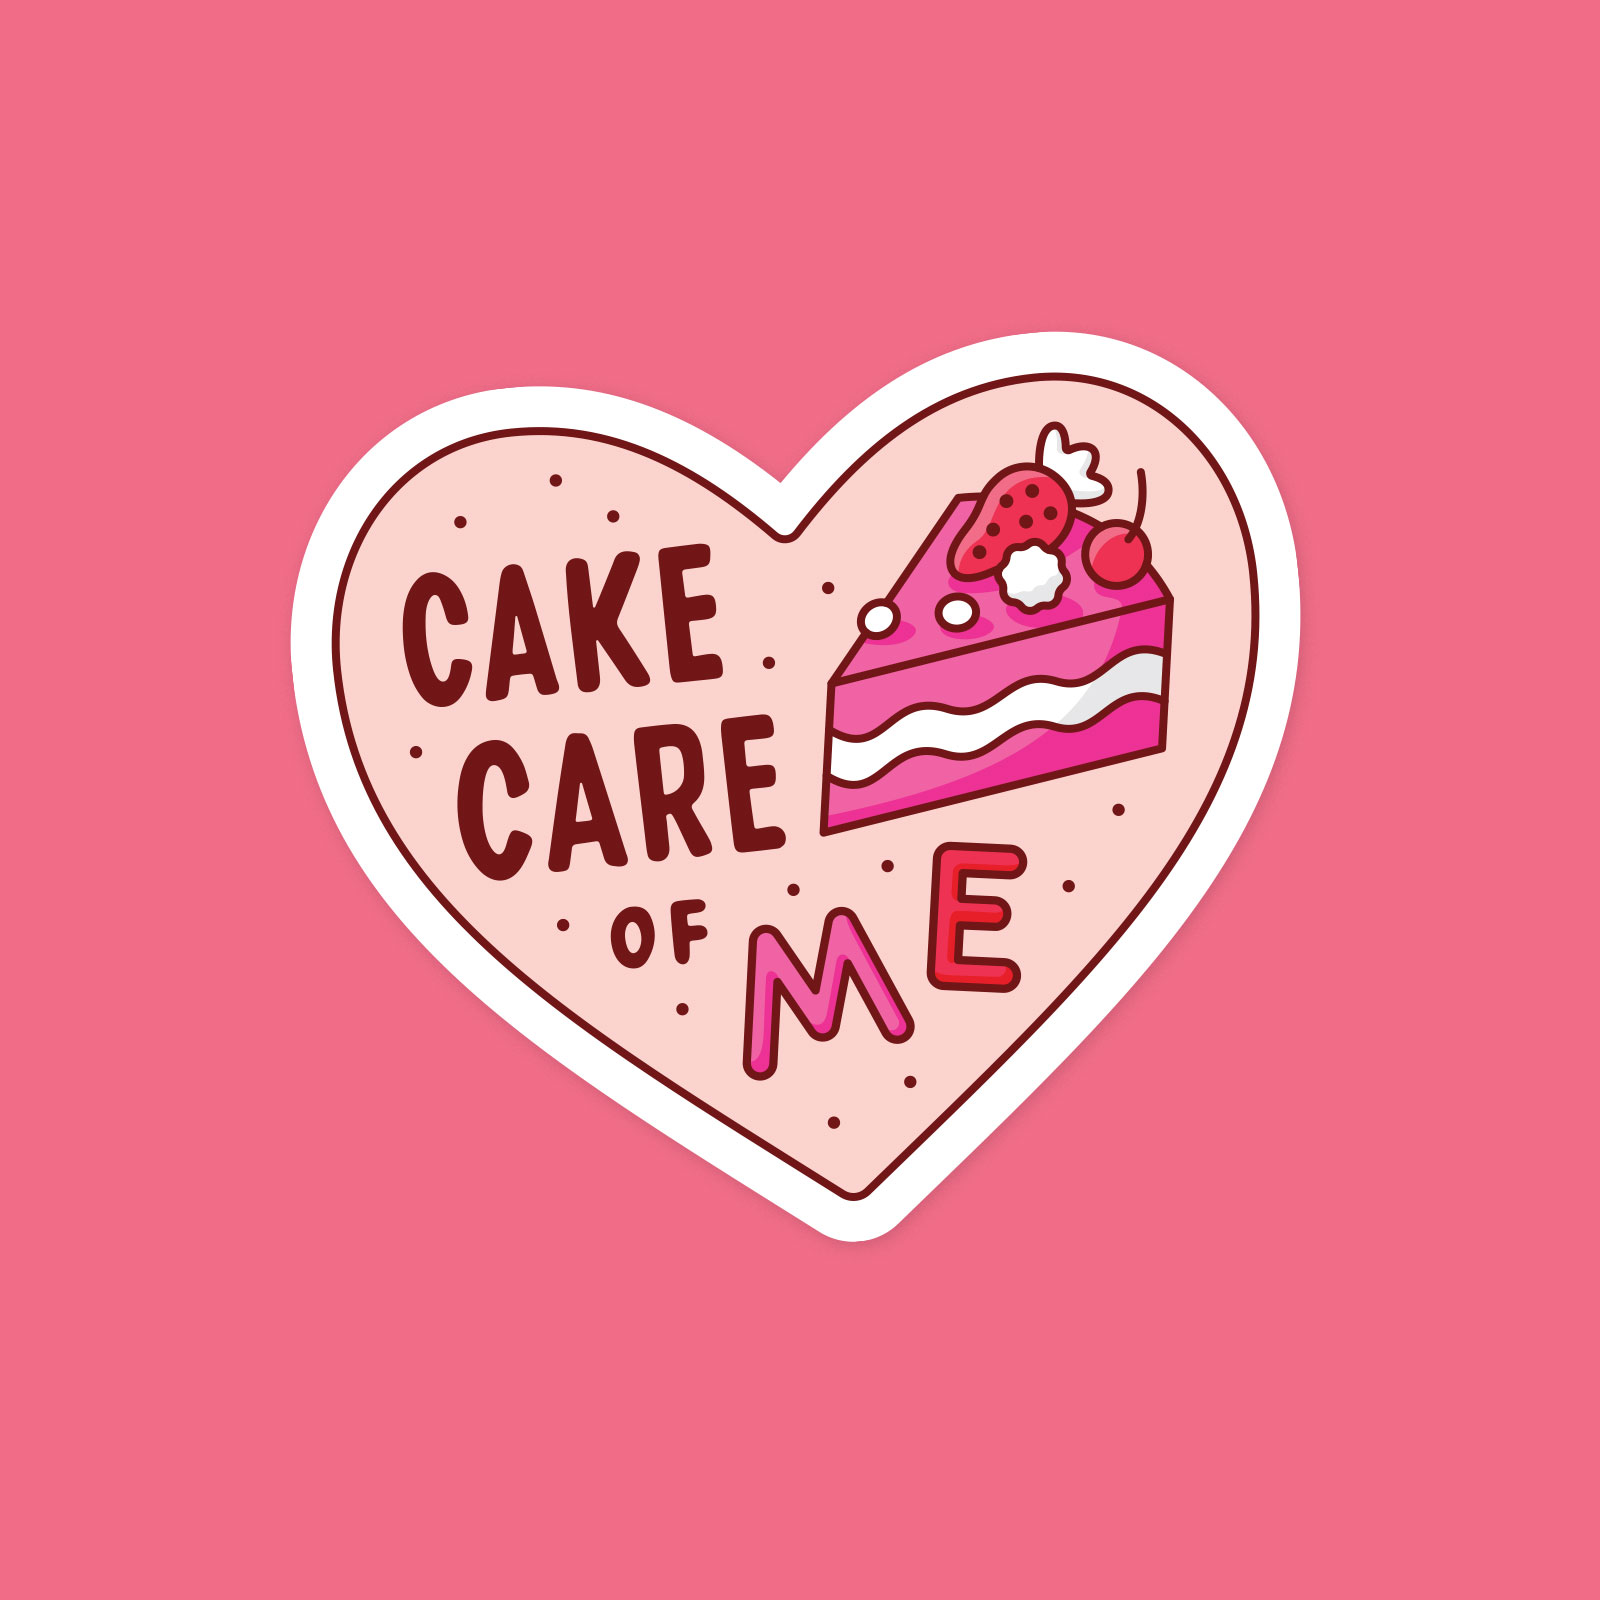 A heart shaped sticker that says Cake Care of Me, next to an illustration of a slice of cake.